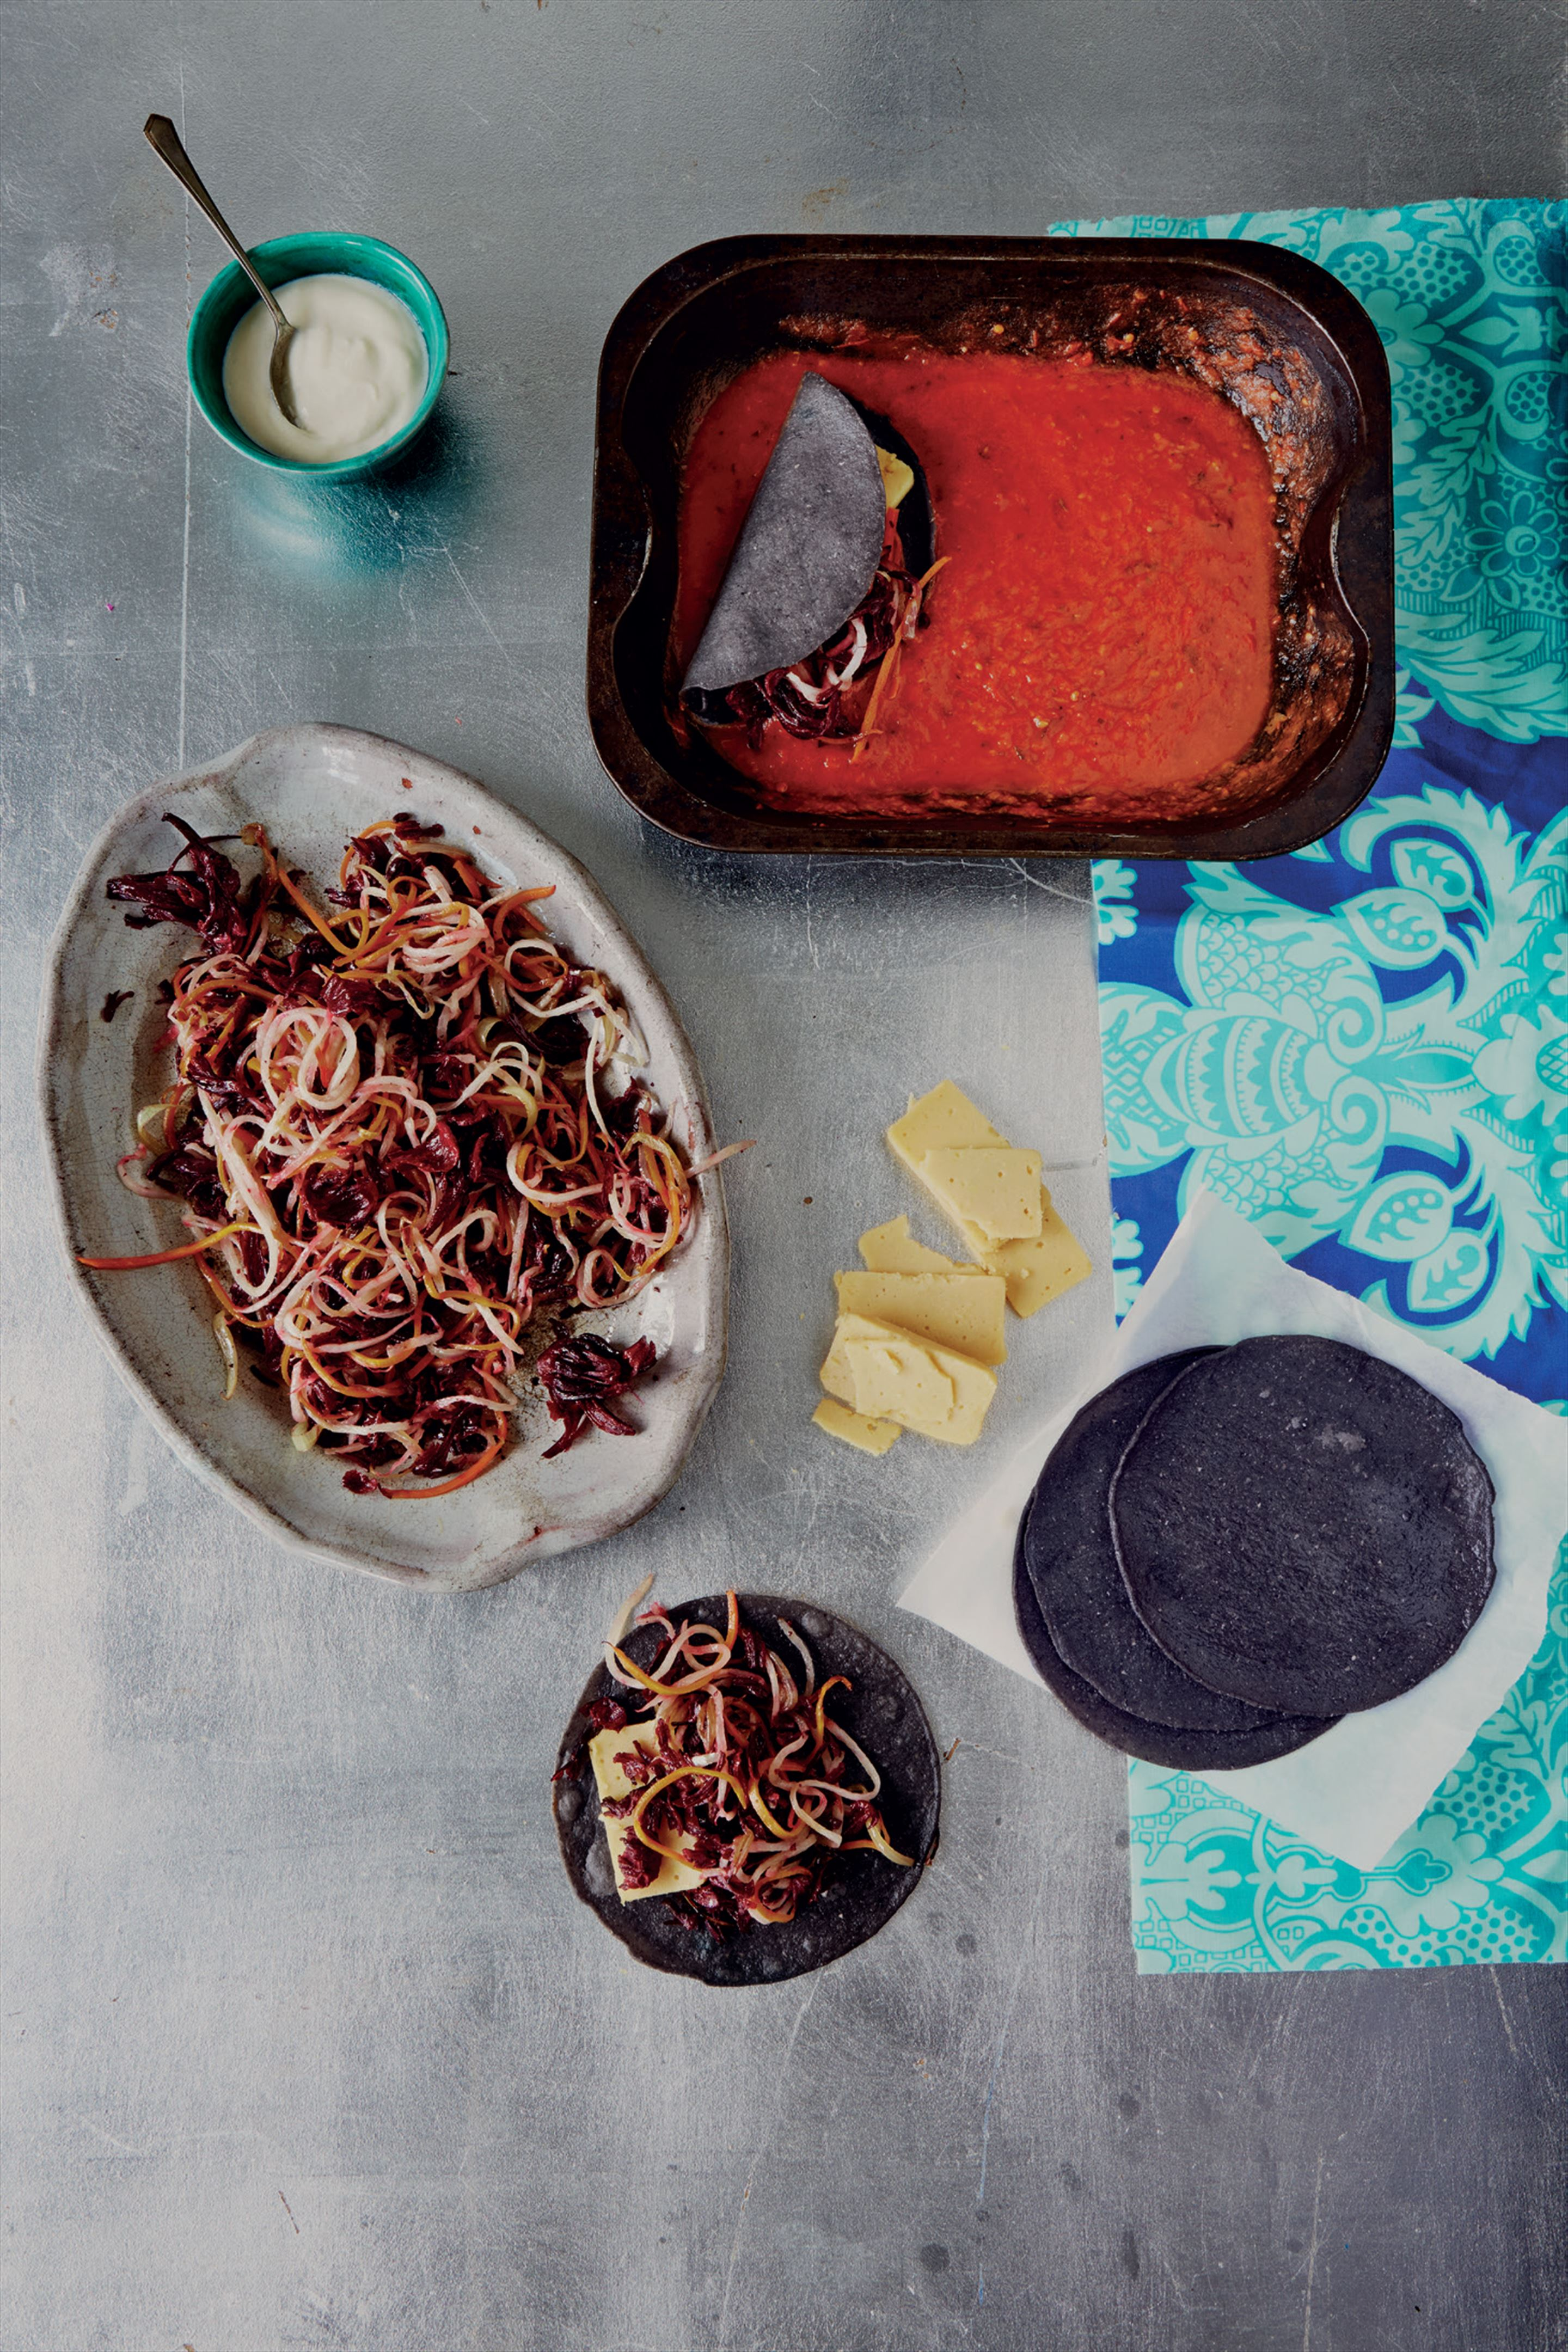 Hibiscus flowers in blue corn enchiladas with pickled purple cabbage